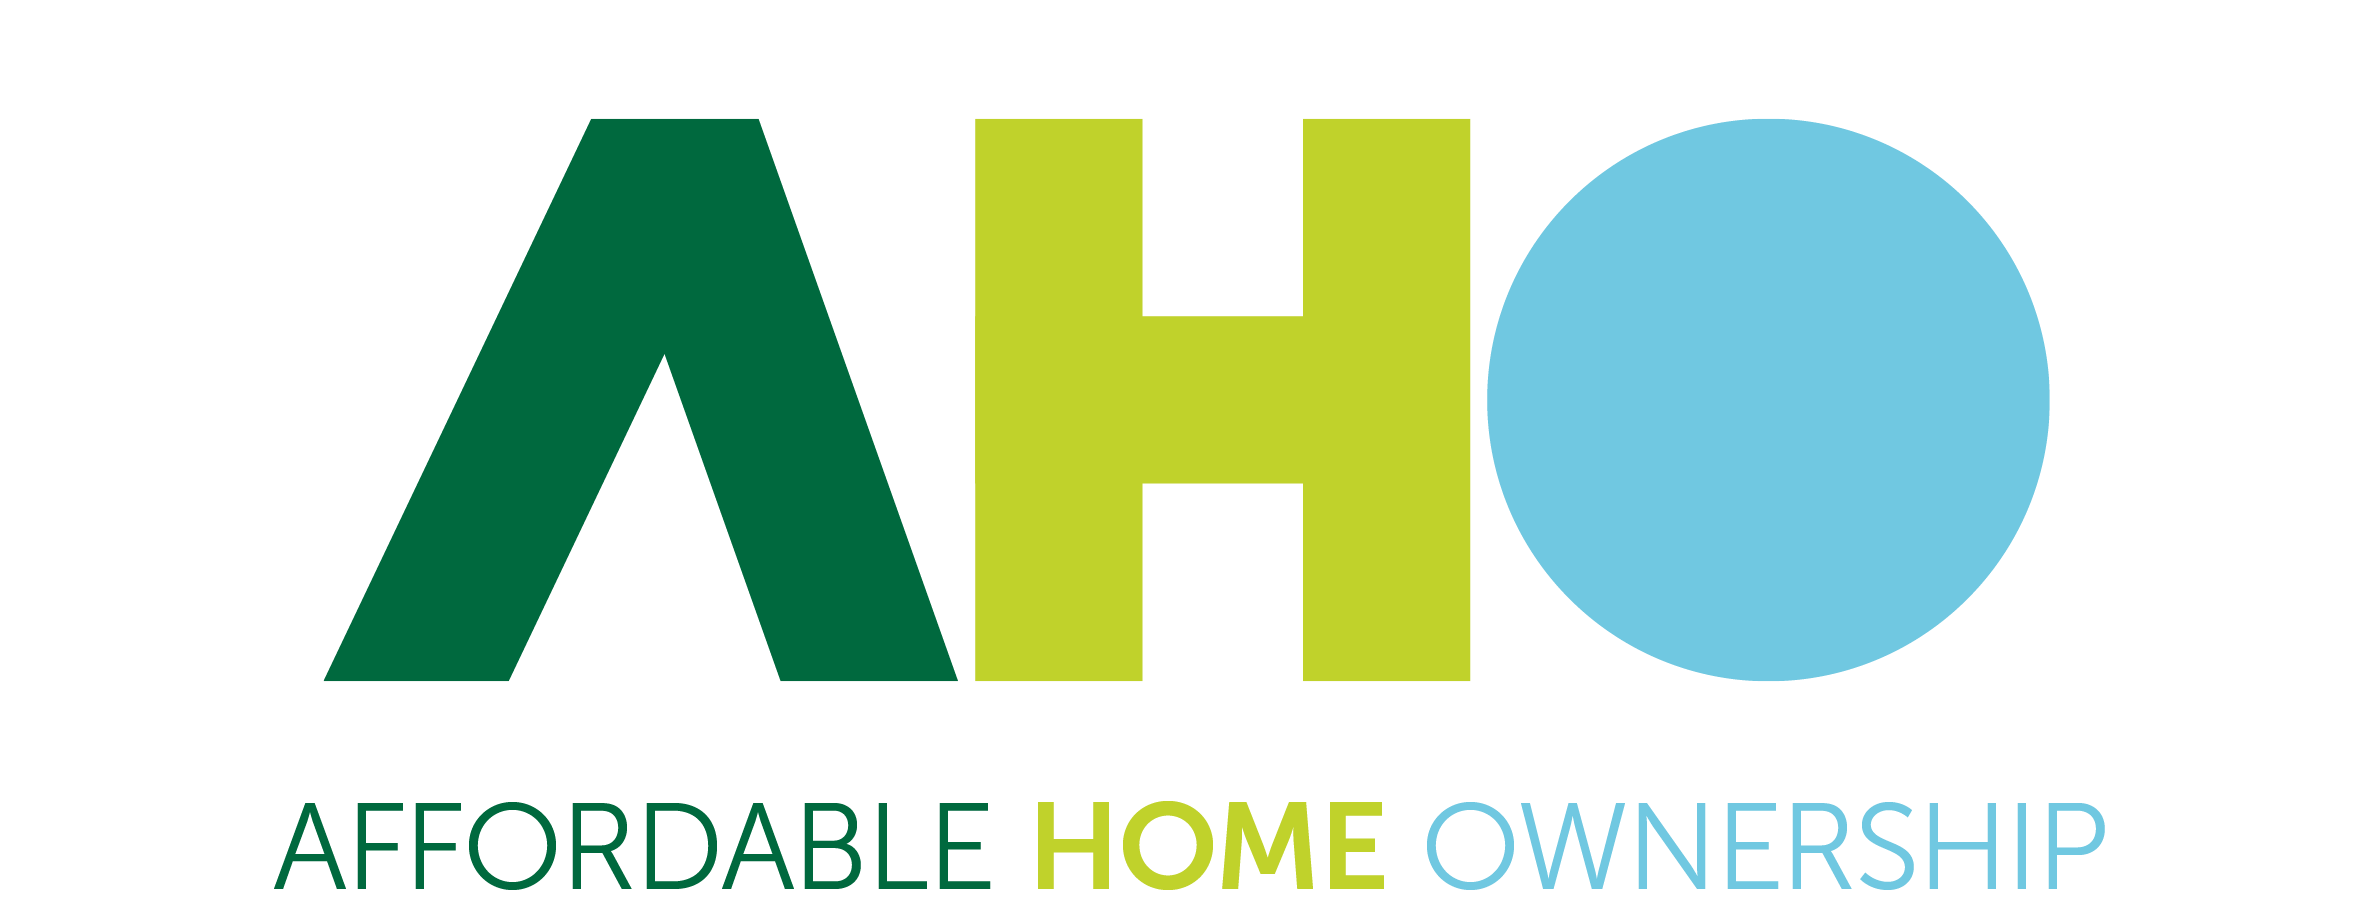 Affordable Home Ownership 2020